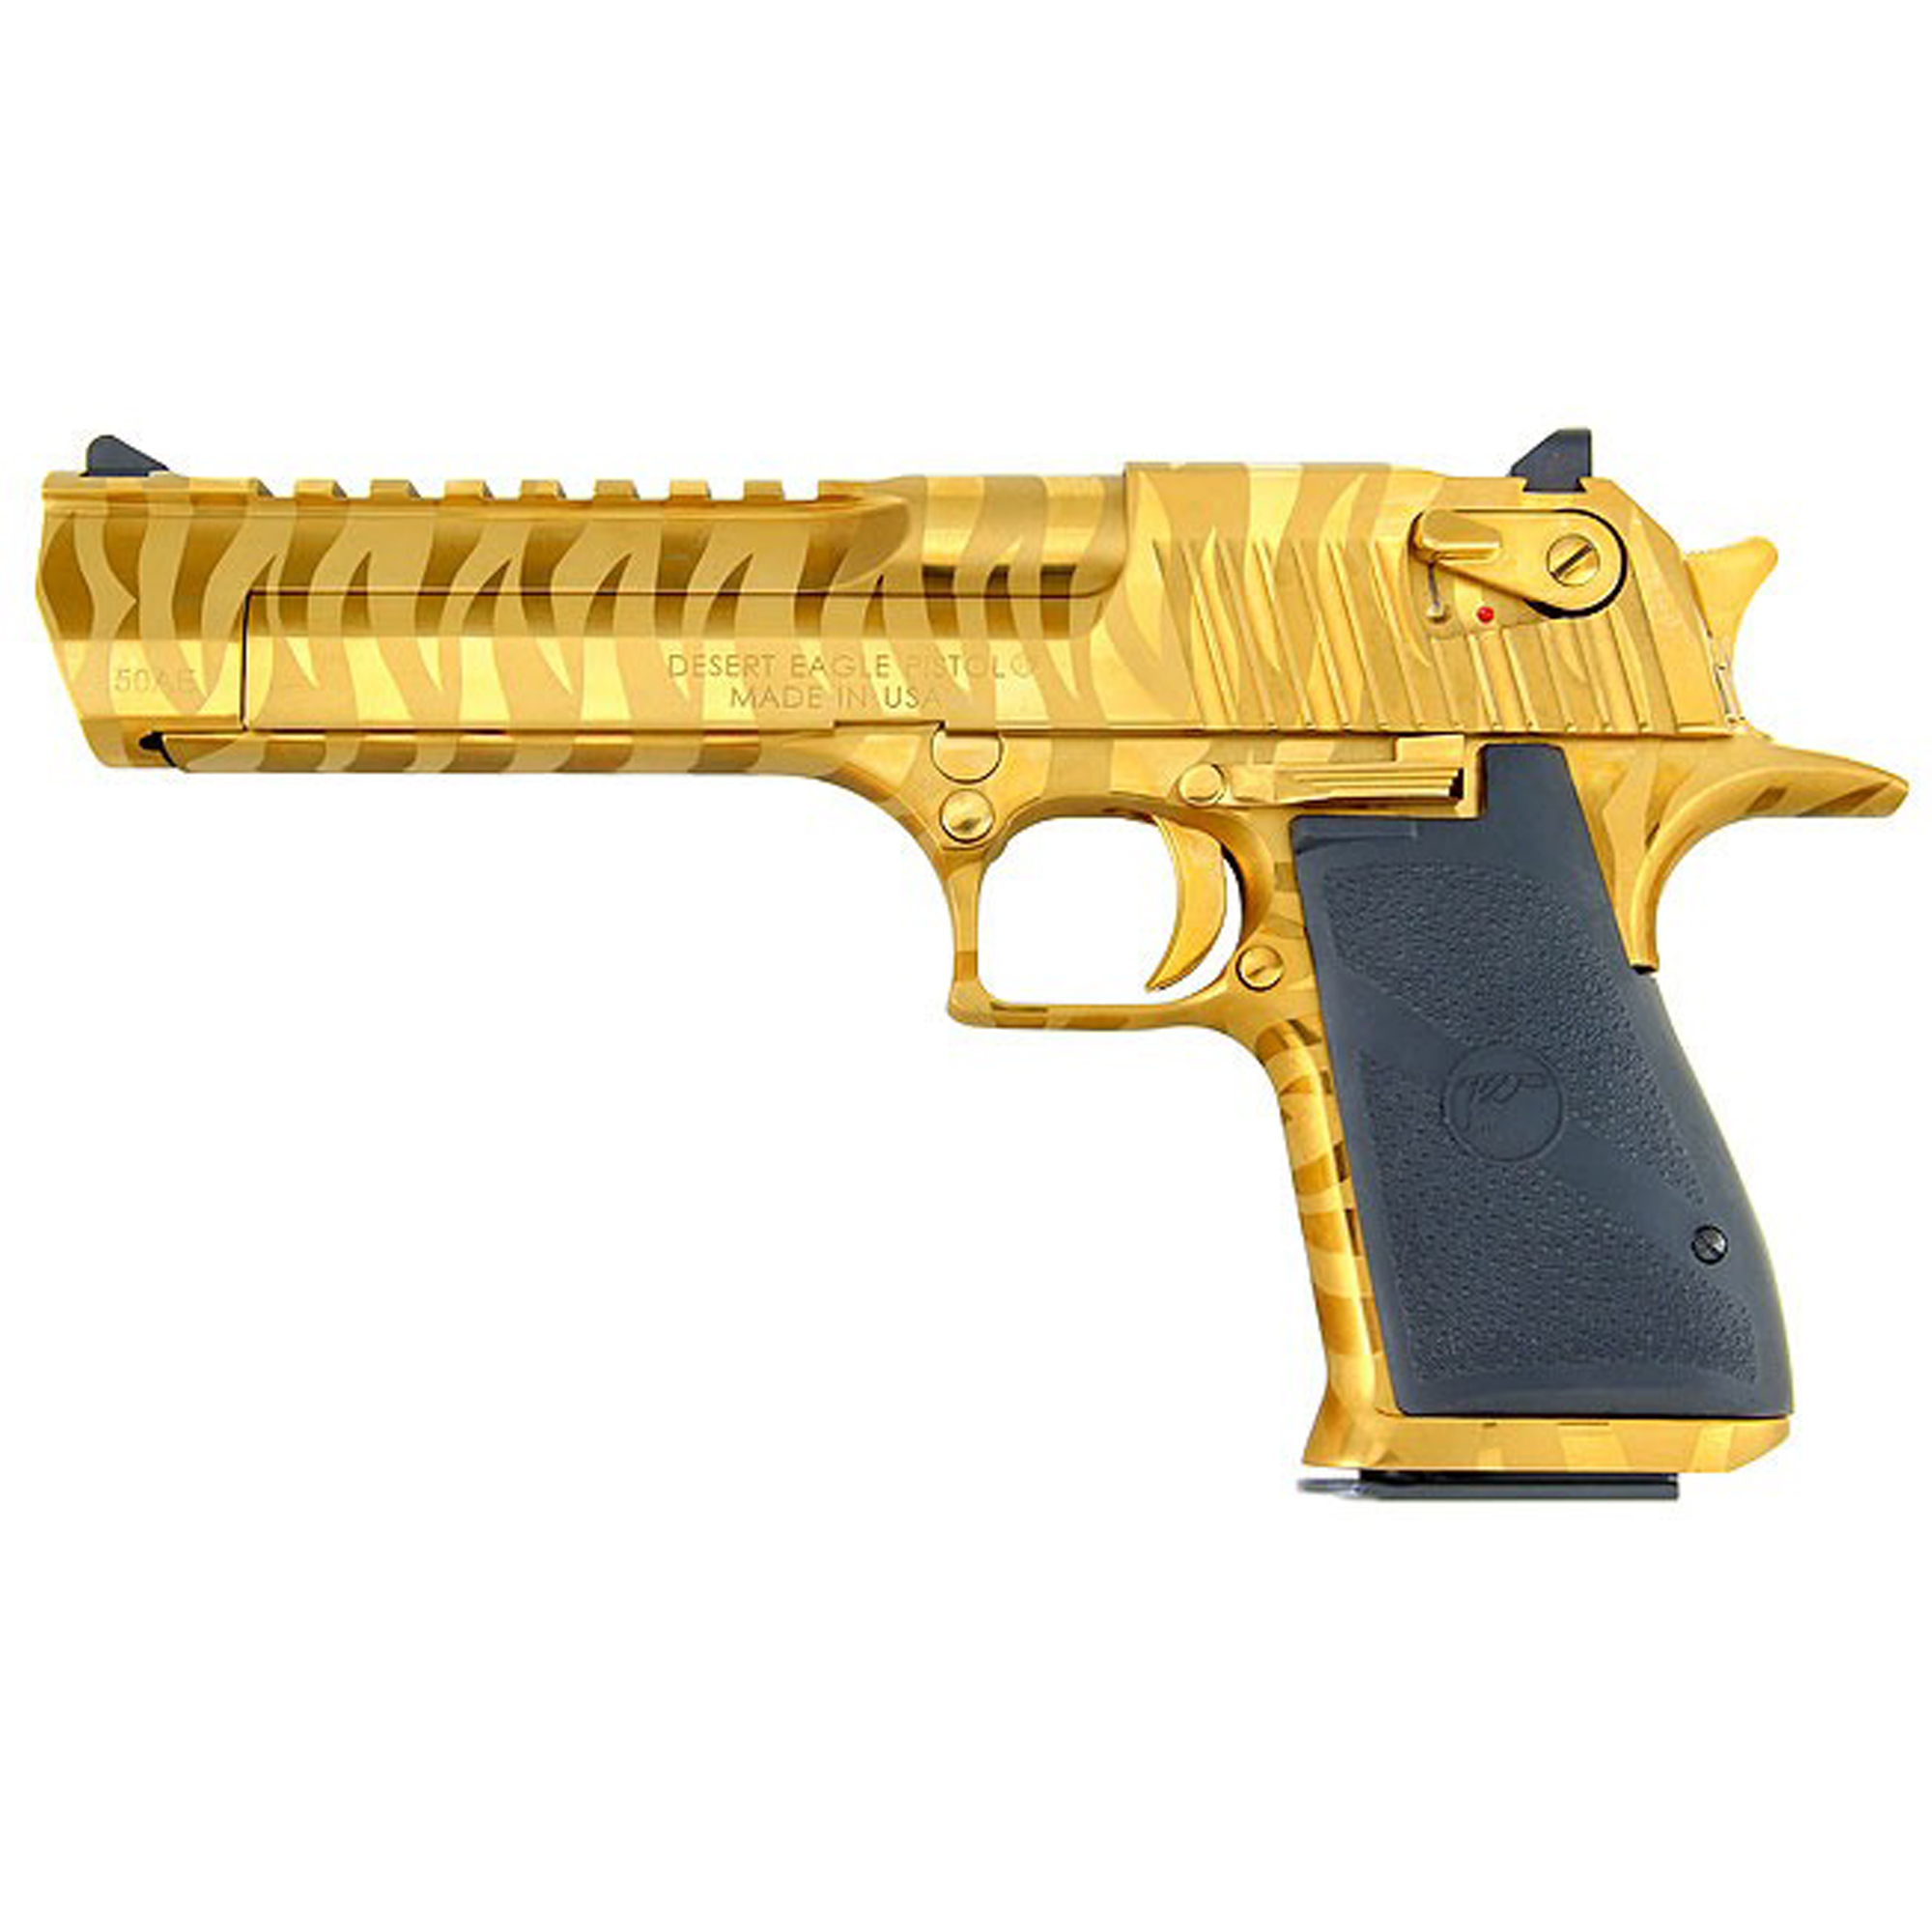 """After 25 years of being accessorized"""" customized and re-imagined in countless movies"""" television shows and video games"""" the Desert Eagle Pistol has emerged as a pop-culture icon. You can customize your Desert Eagle Pistol with a variety of impressive finishes to add your own distinctive twist to this timeless firearm. All models feature a full Weaver style accessory rail on the barrel from the end of the chamber to right behind the front sight and standard ambidextrous safeties. Includes one 7-round magazine."""